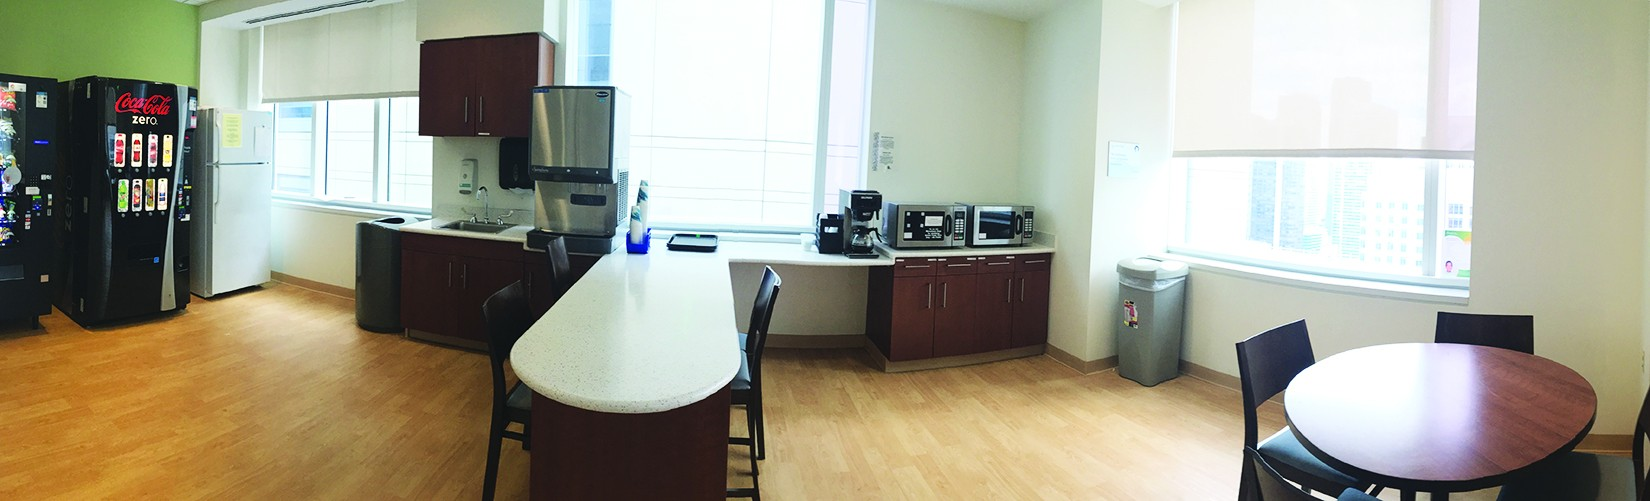 A kitchen was built for families of patients in the pediatric intensive care unit floor at Ann & Robert H. Lurie Children's Hospital of Chicago.